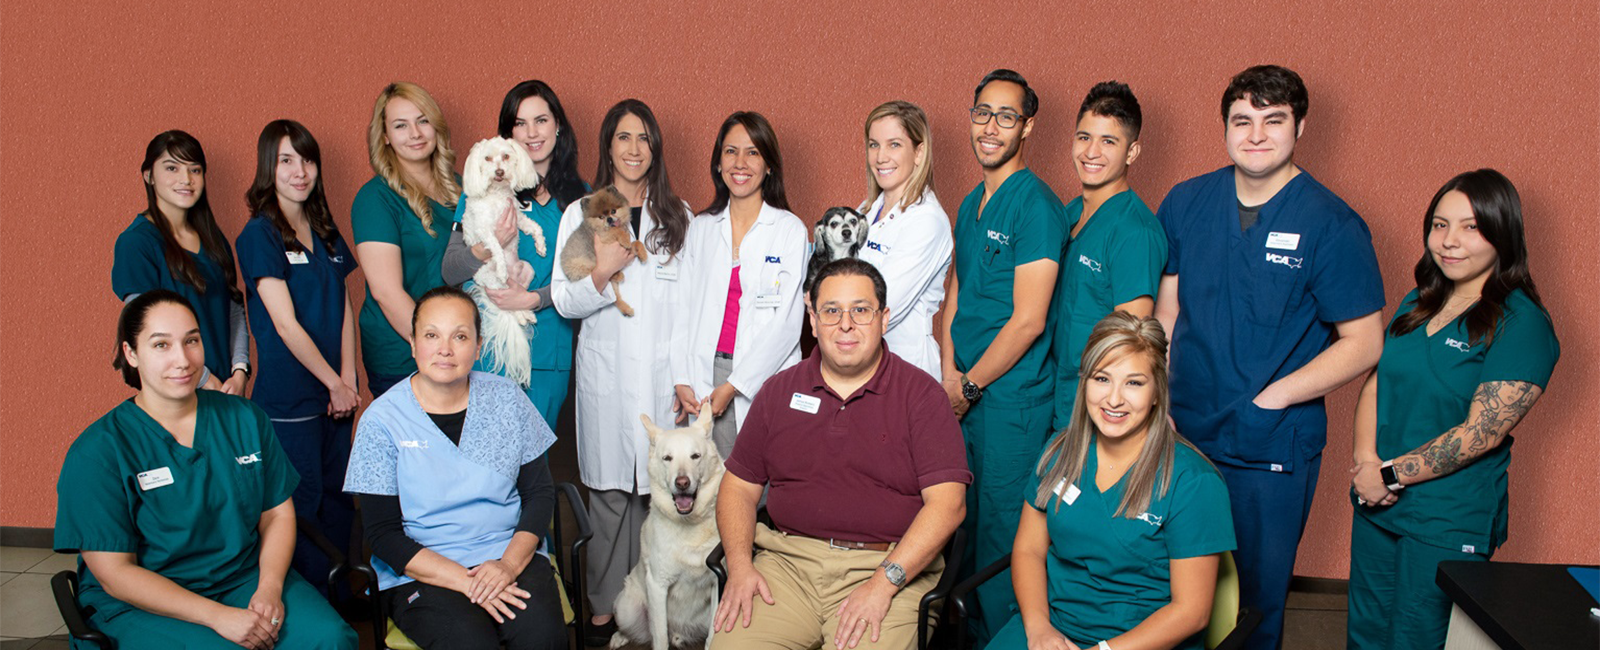 Homepage Team Picture of VCA Wyoming Animal Hospital